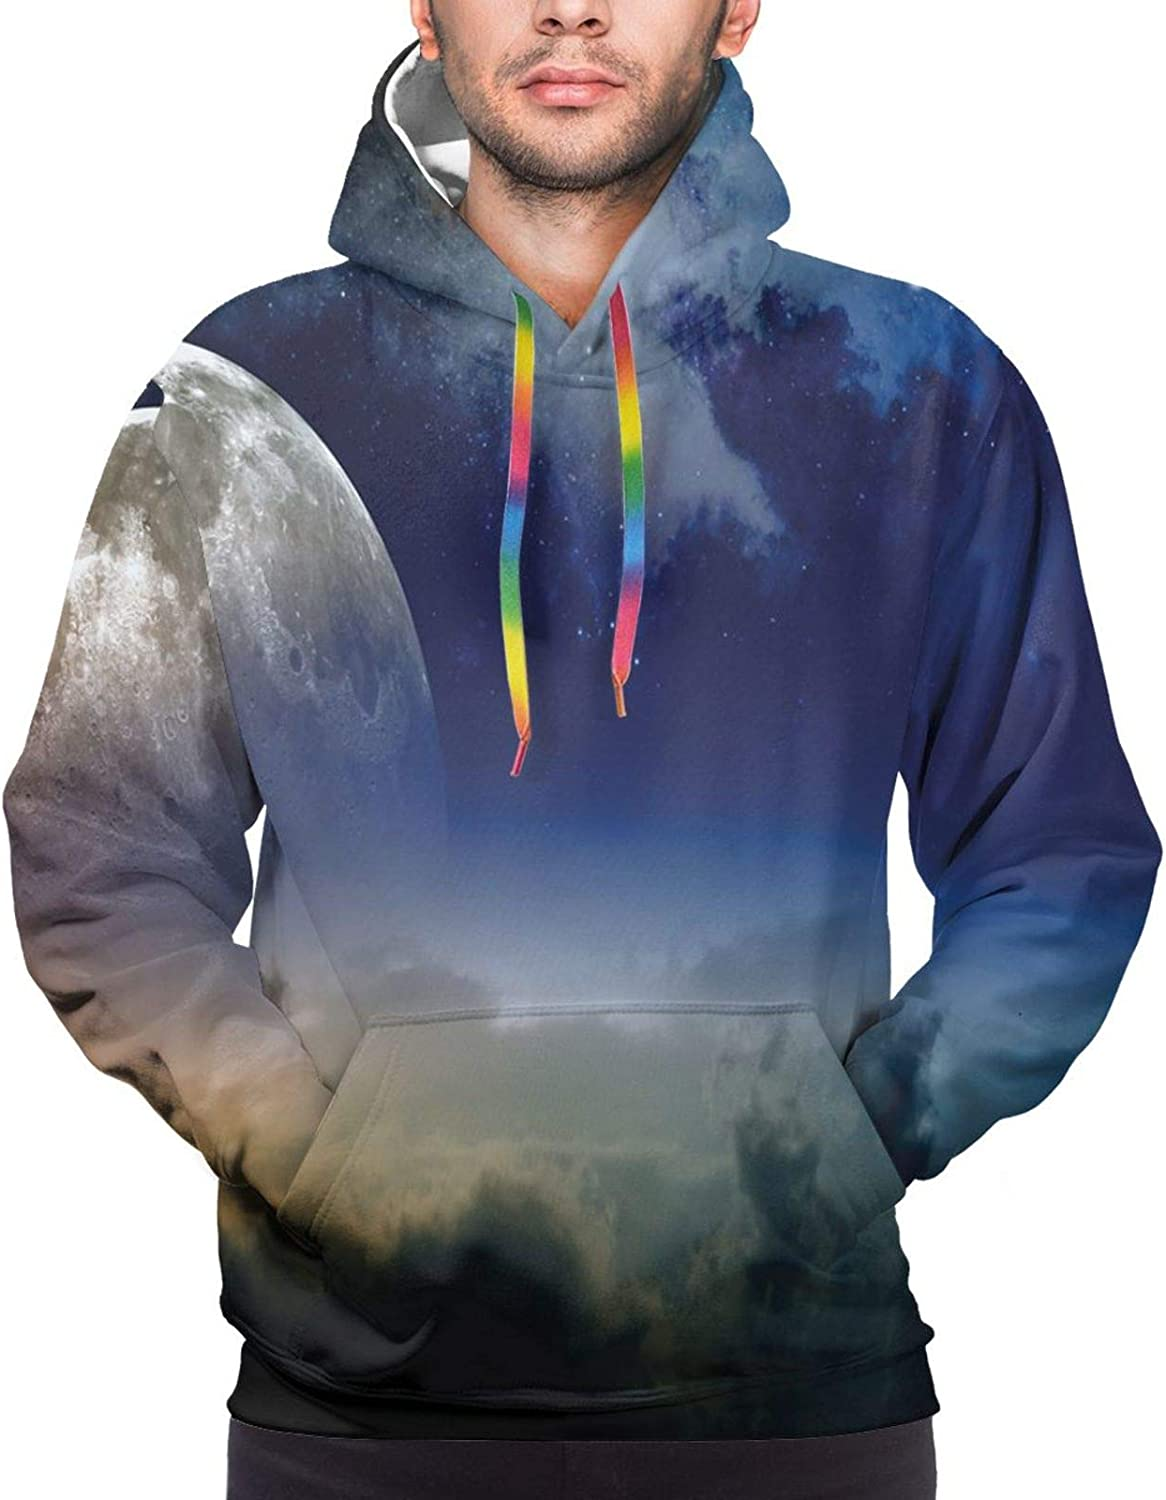 Men's Hoodies Sweatshirts,Full Moon Over The Forest Sky with Stars Dots and Swirls Background